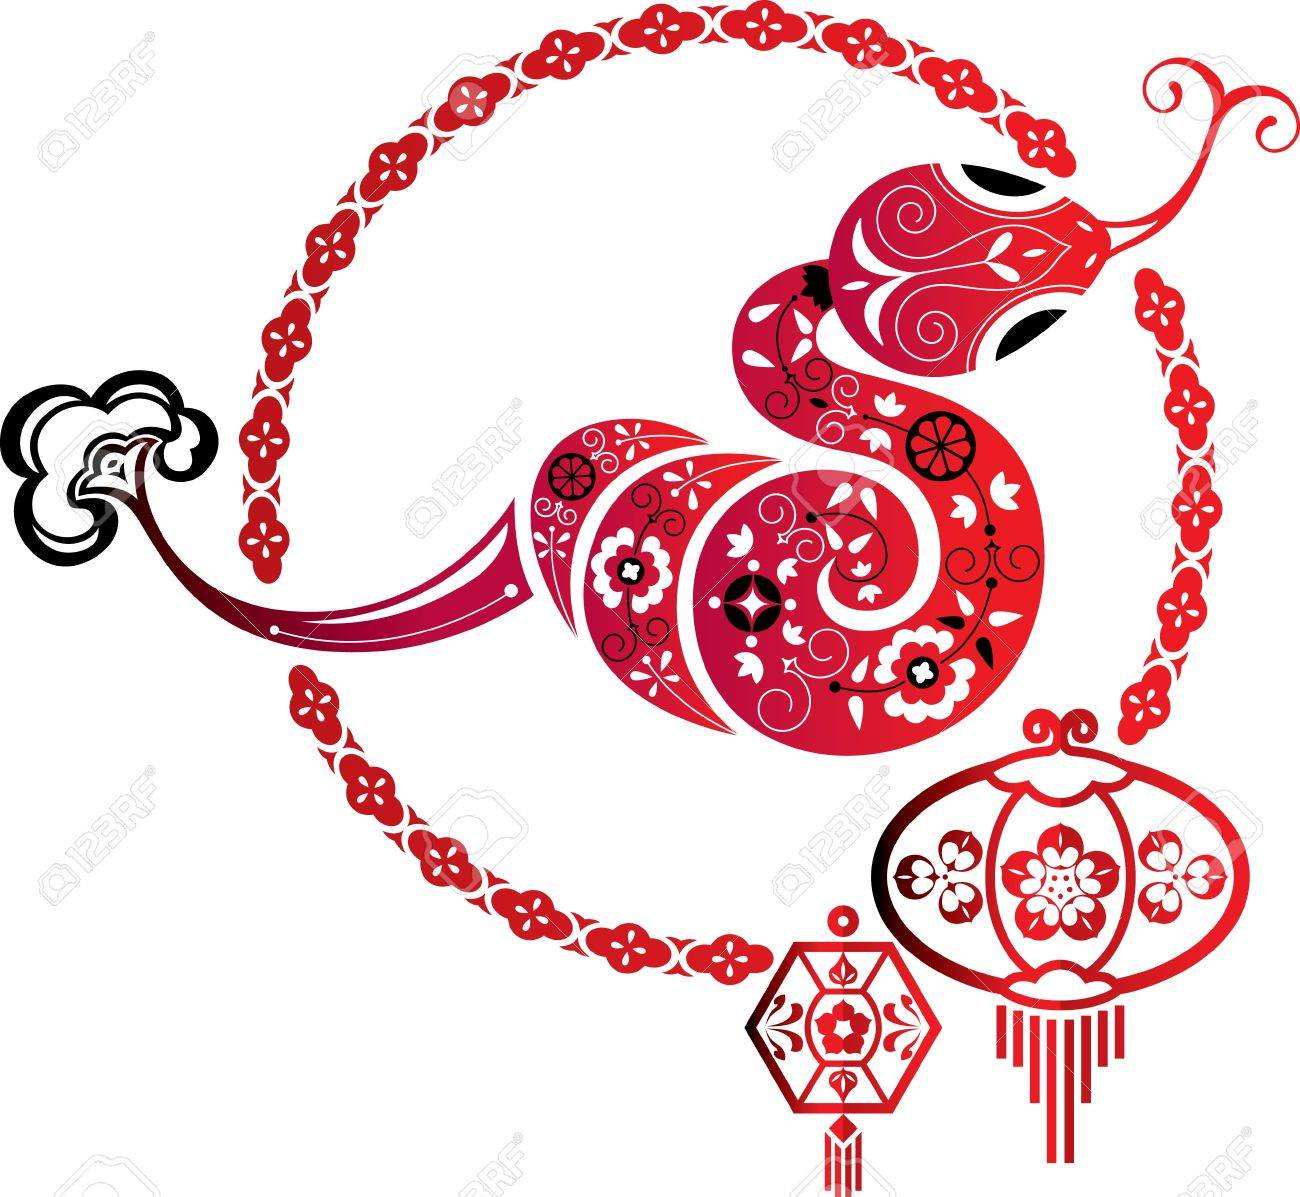 Fortune Snake and Chinese lantern graphic element Stock Vector - 16902956